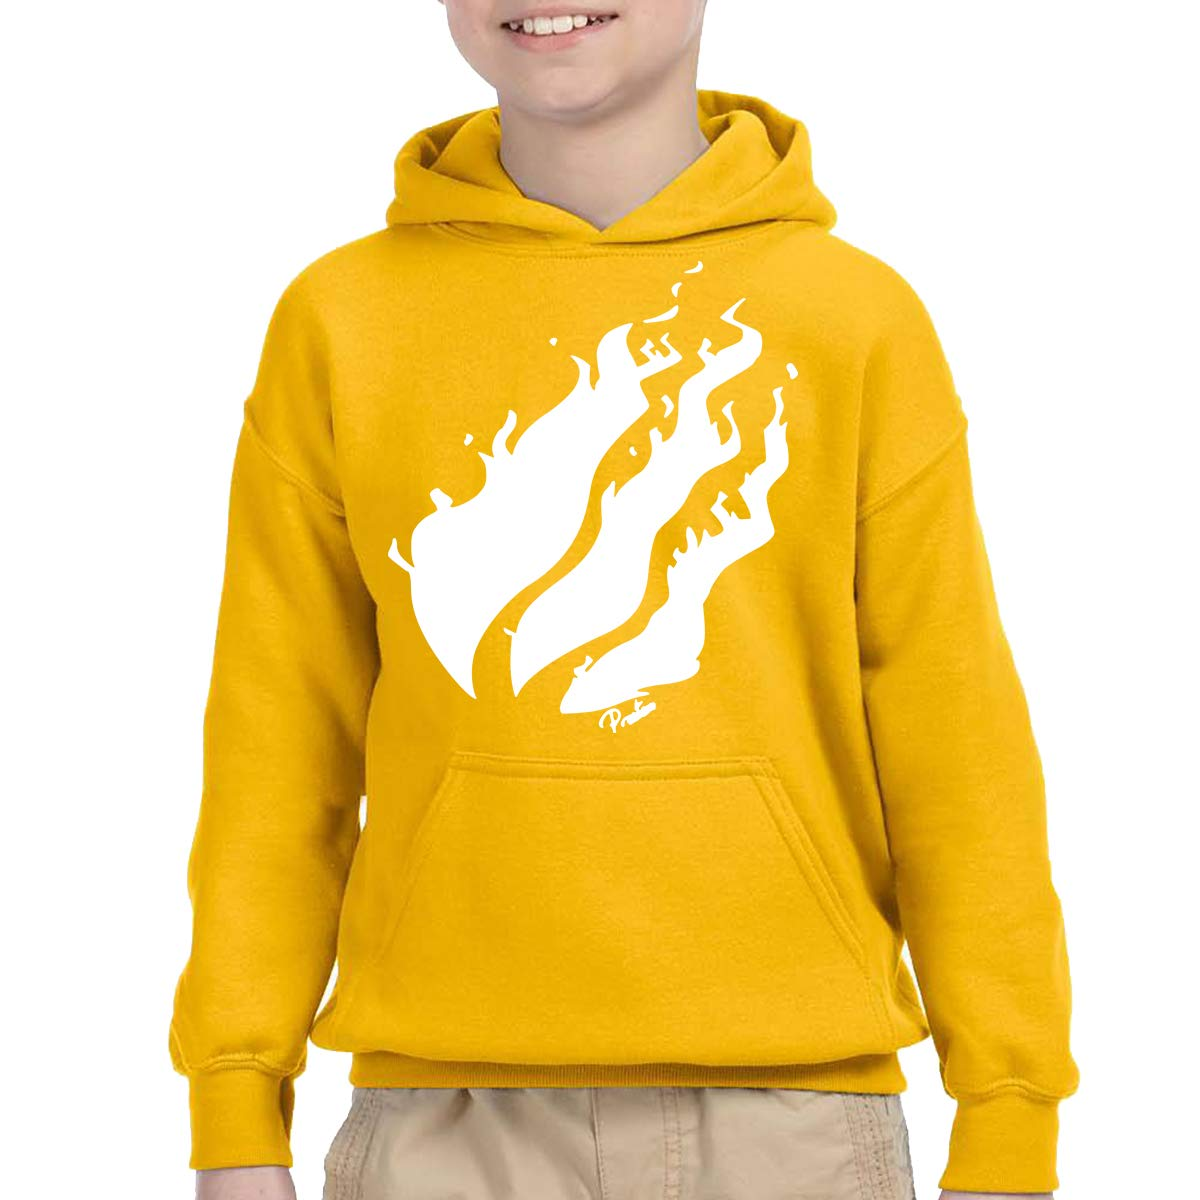 Boys' Clothing : Online Shopping For Clothing, Shoes